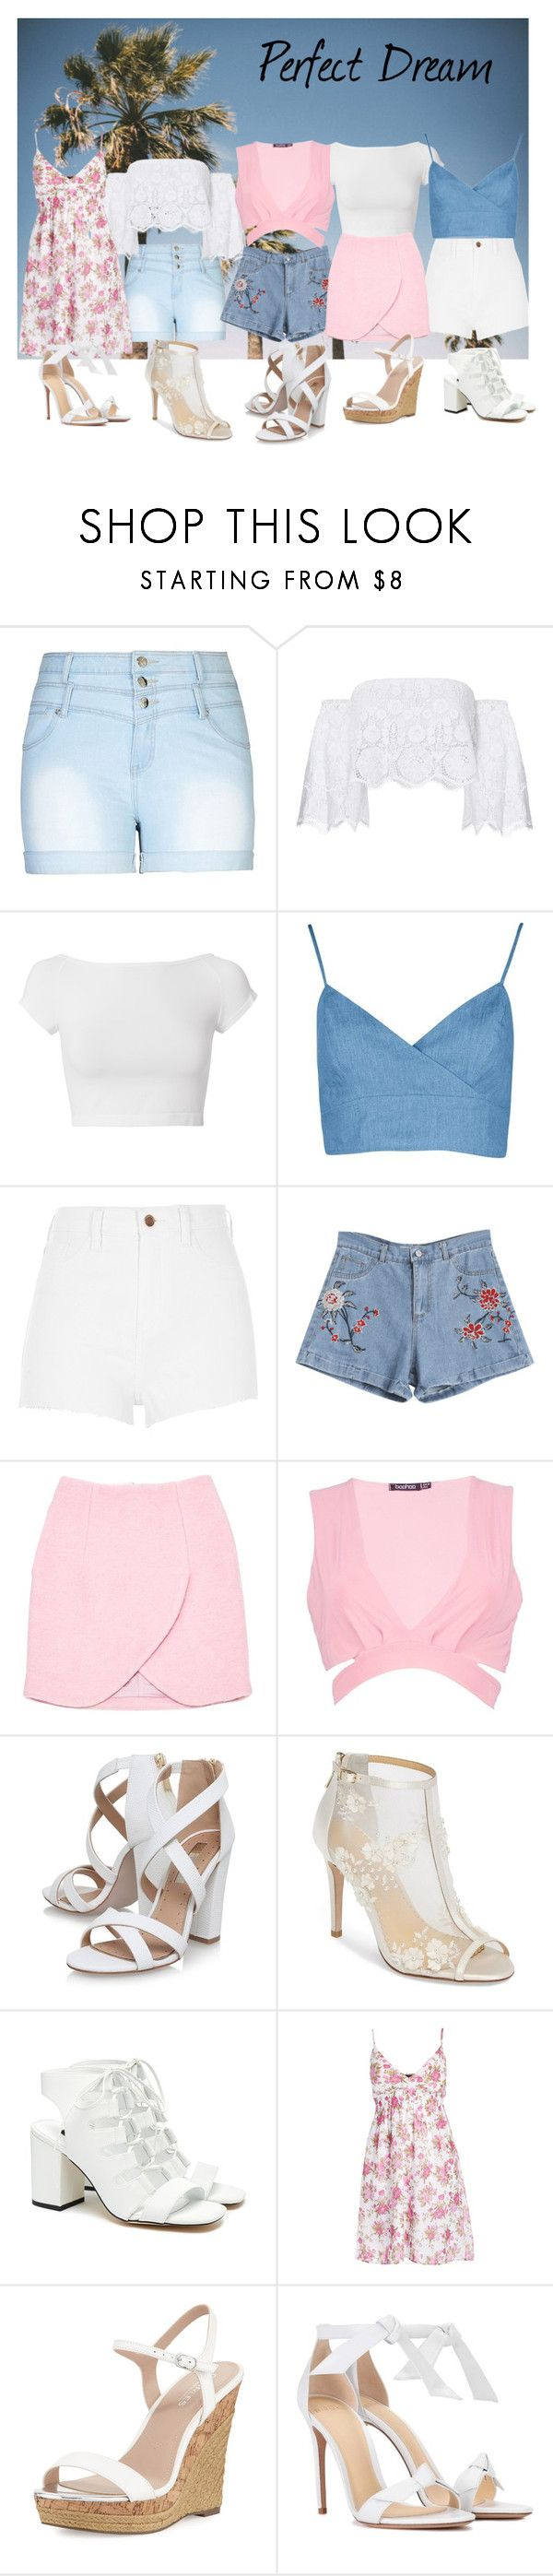 """""""Set 117"""" by jen28pup on Polyvore featuring City Chic, Miguelina, Helmut Lang, River Island, Carven, Boohoo, Miss KG, Bella Belle, Senso and Charles by Charles David"""